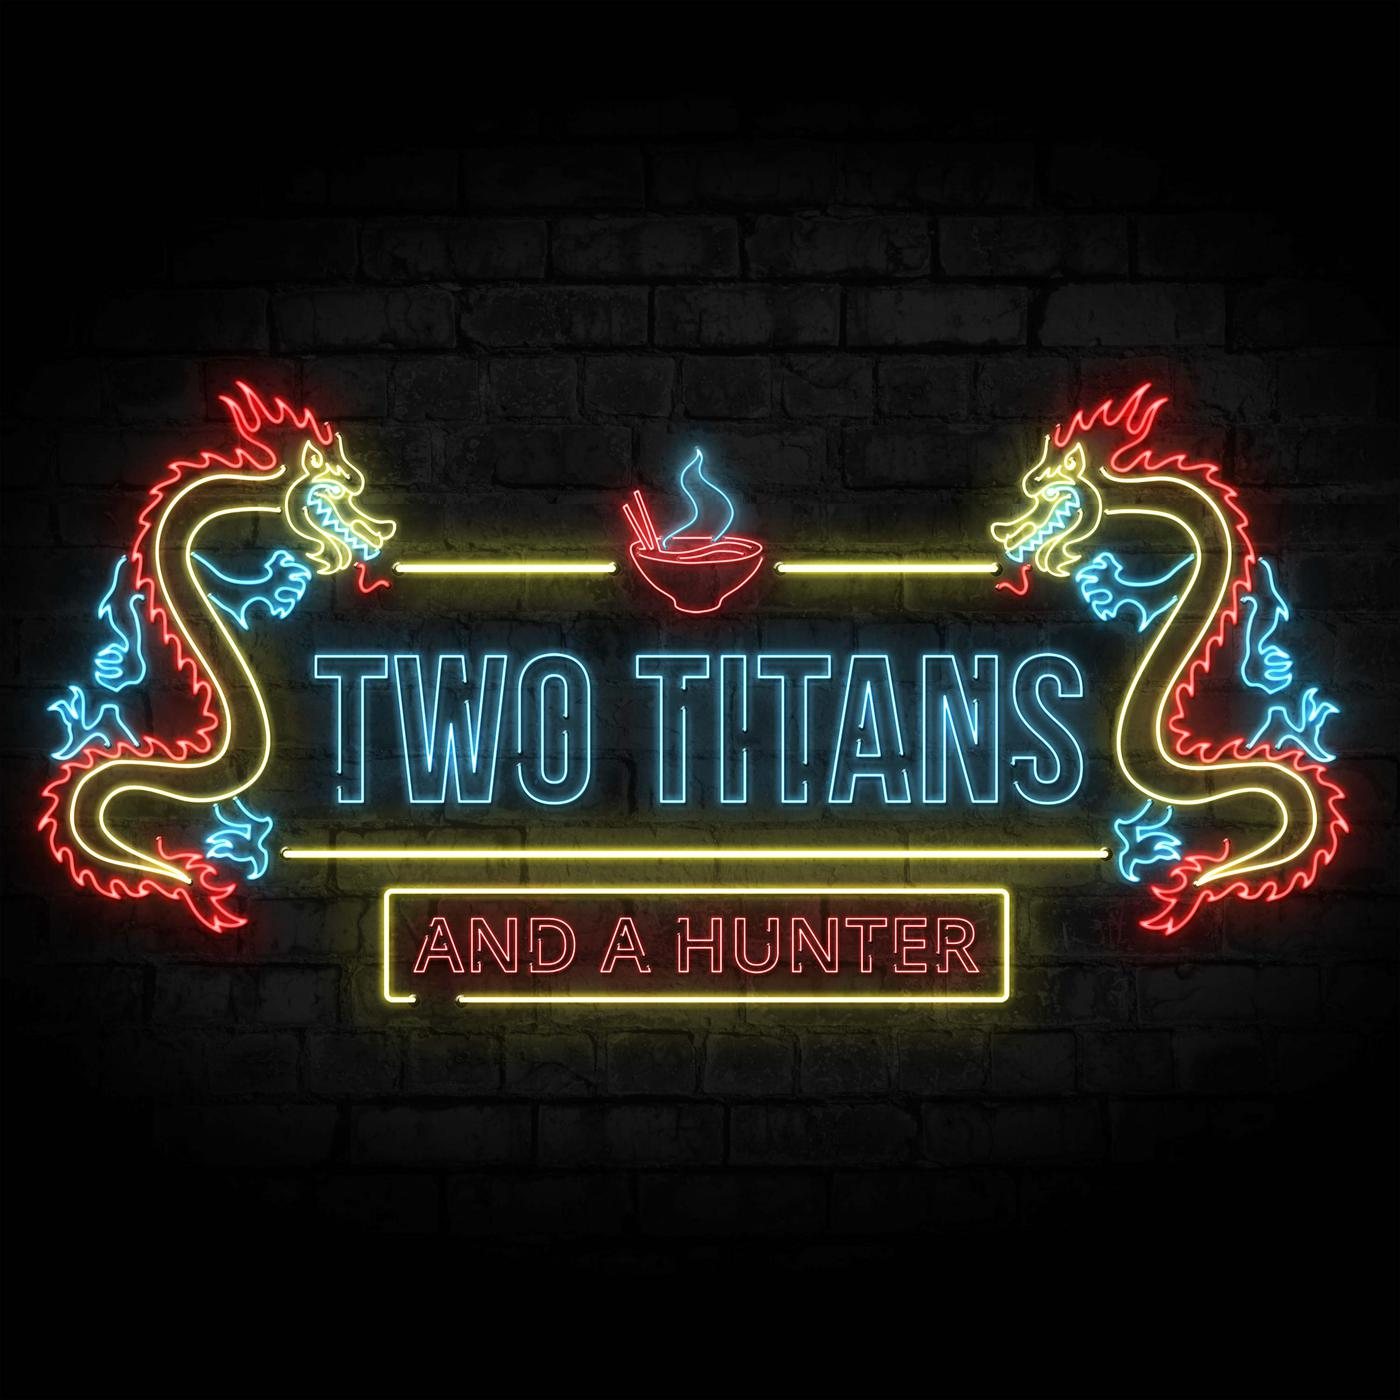 Ep 63 The Old Switcheroo Two Titans And A Hunter A Destiny 2 Podcast Listen Notes I don't really see raiju's harness being a great hunter exotic, but it's the new hotness with anyway, guardians, raiju's harness is disabled for now, which is good for those about to hop into trials. listen notes